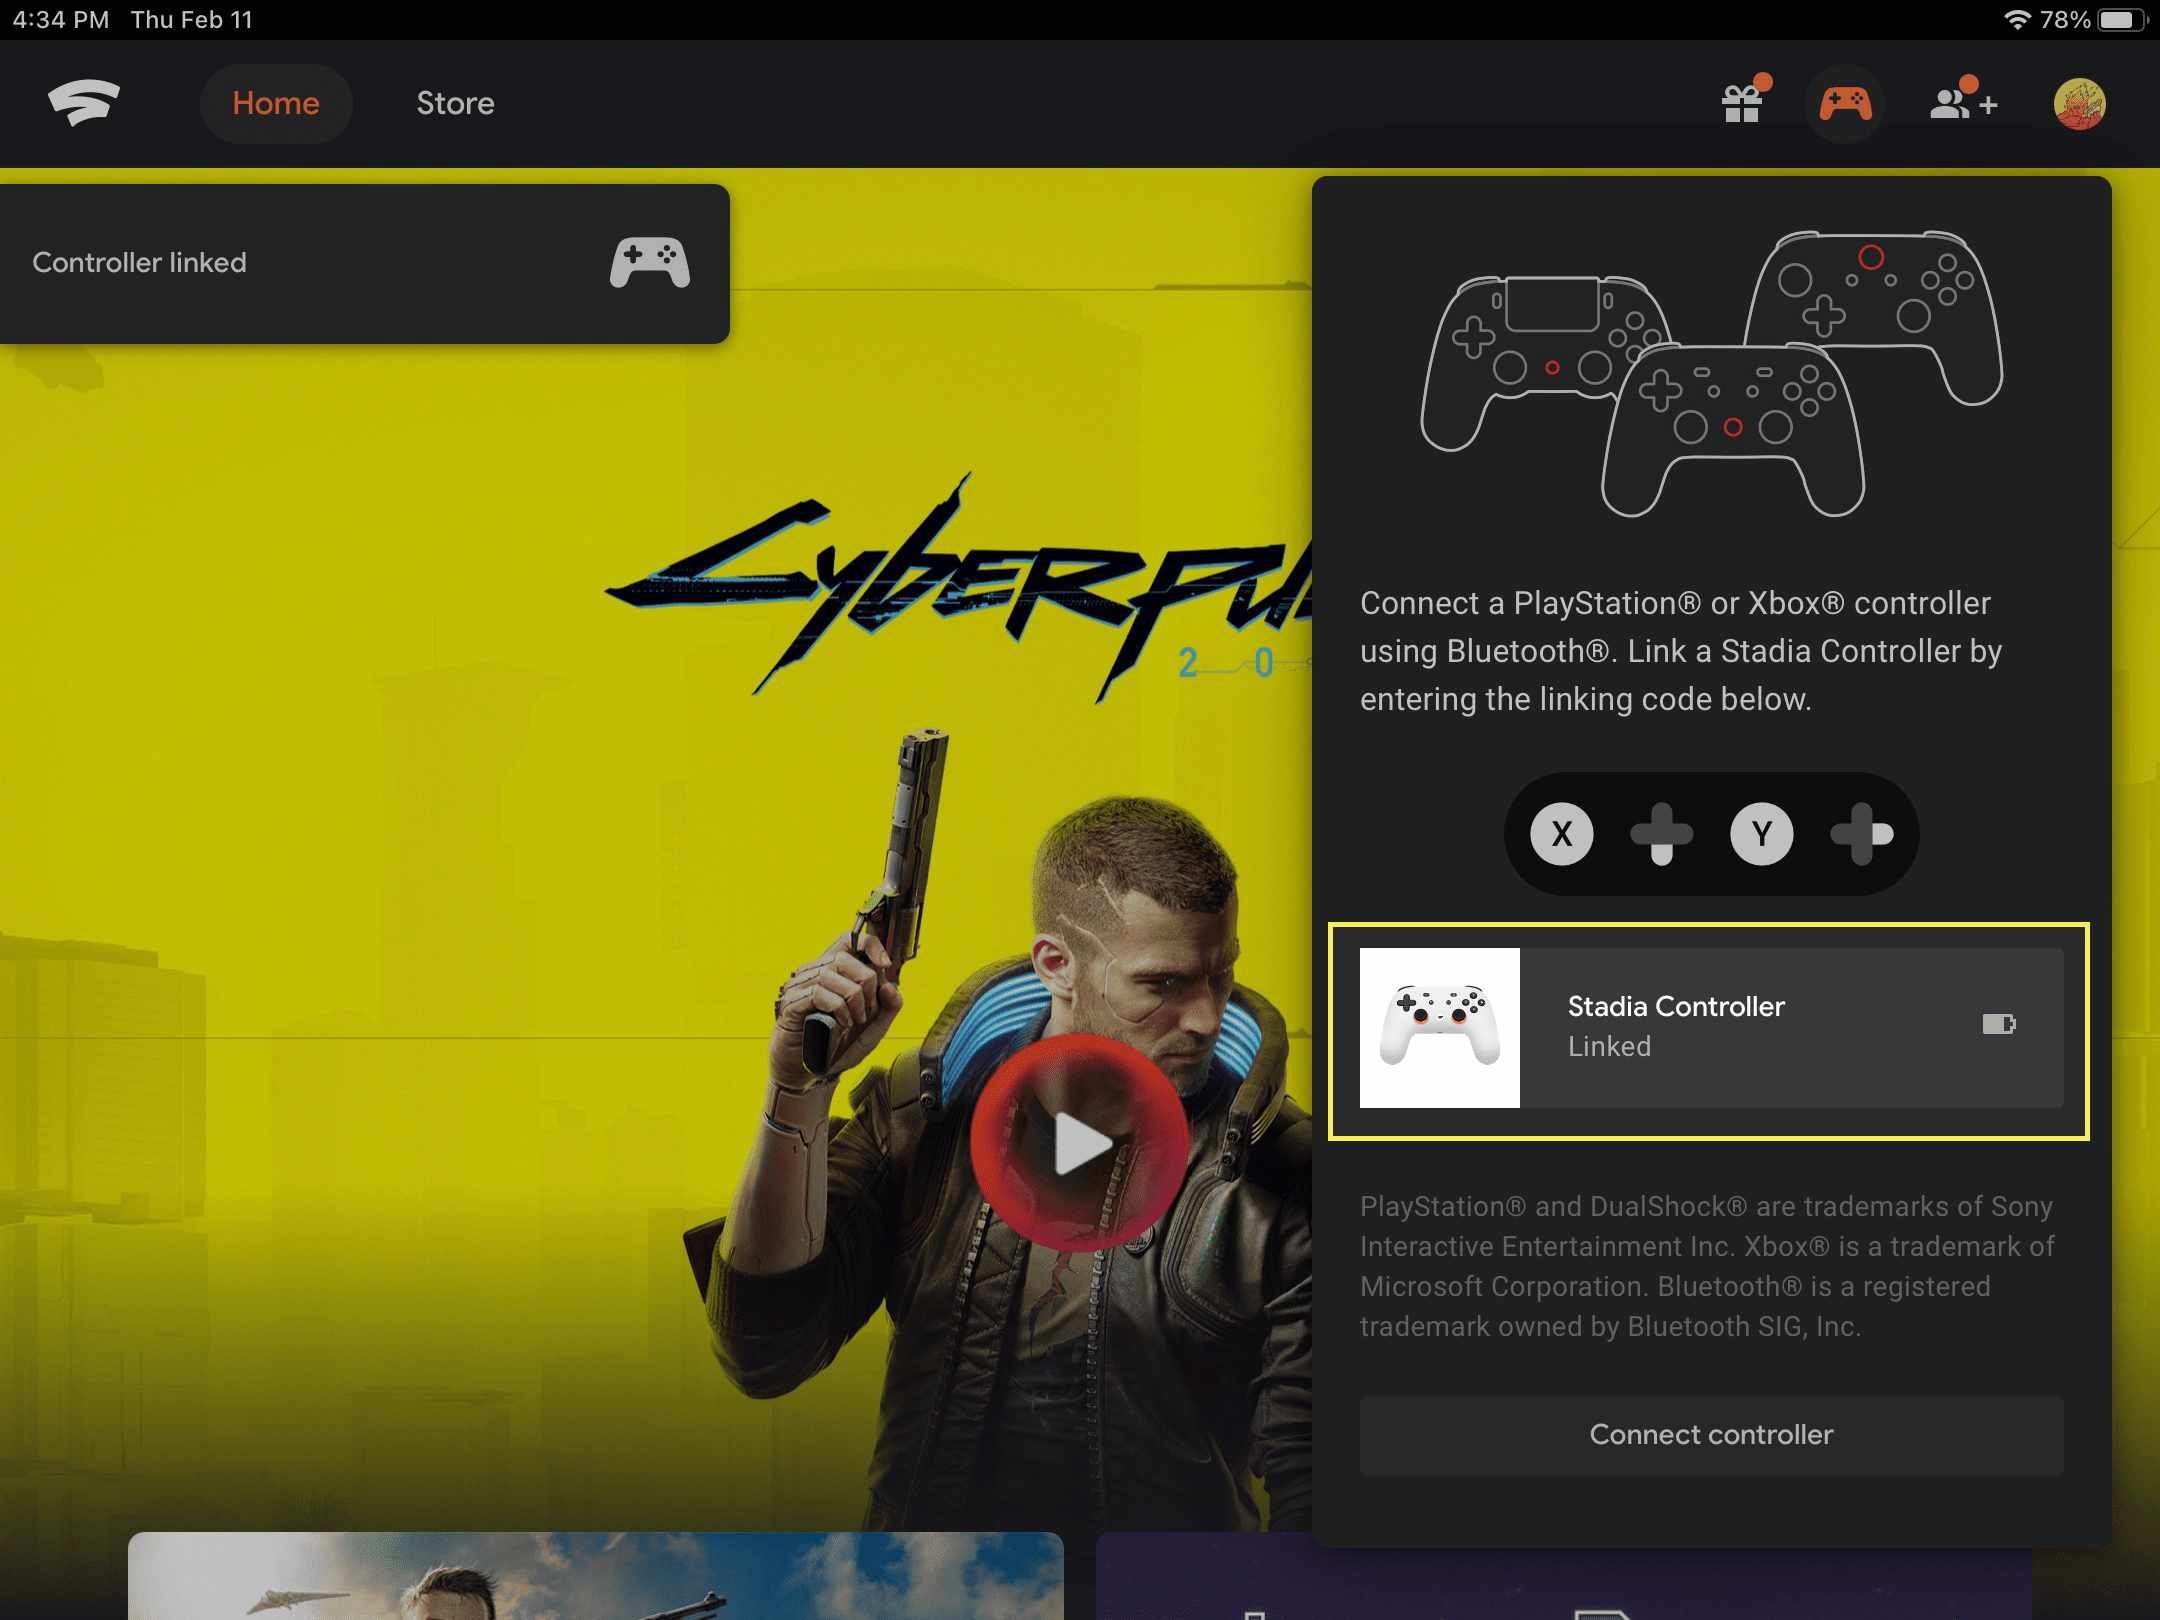 The Stadia website displaying a connected controller in Safari.